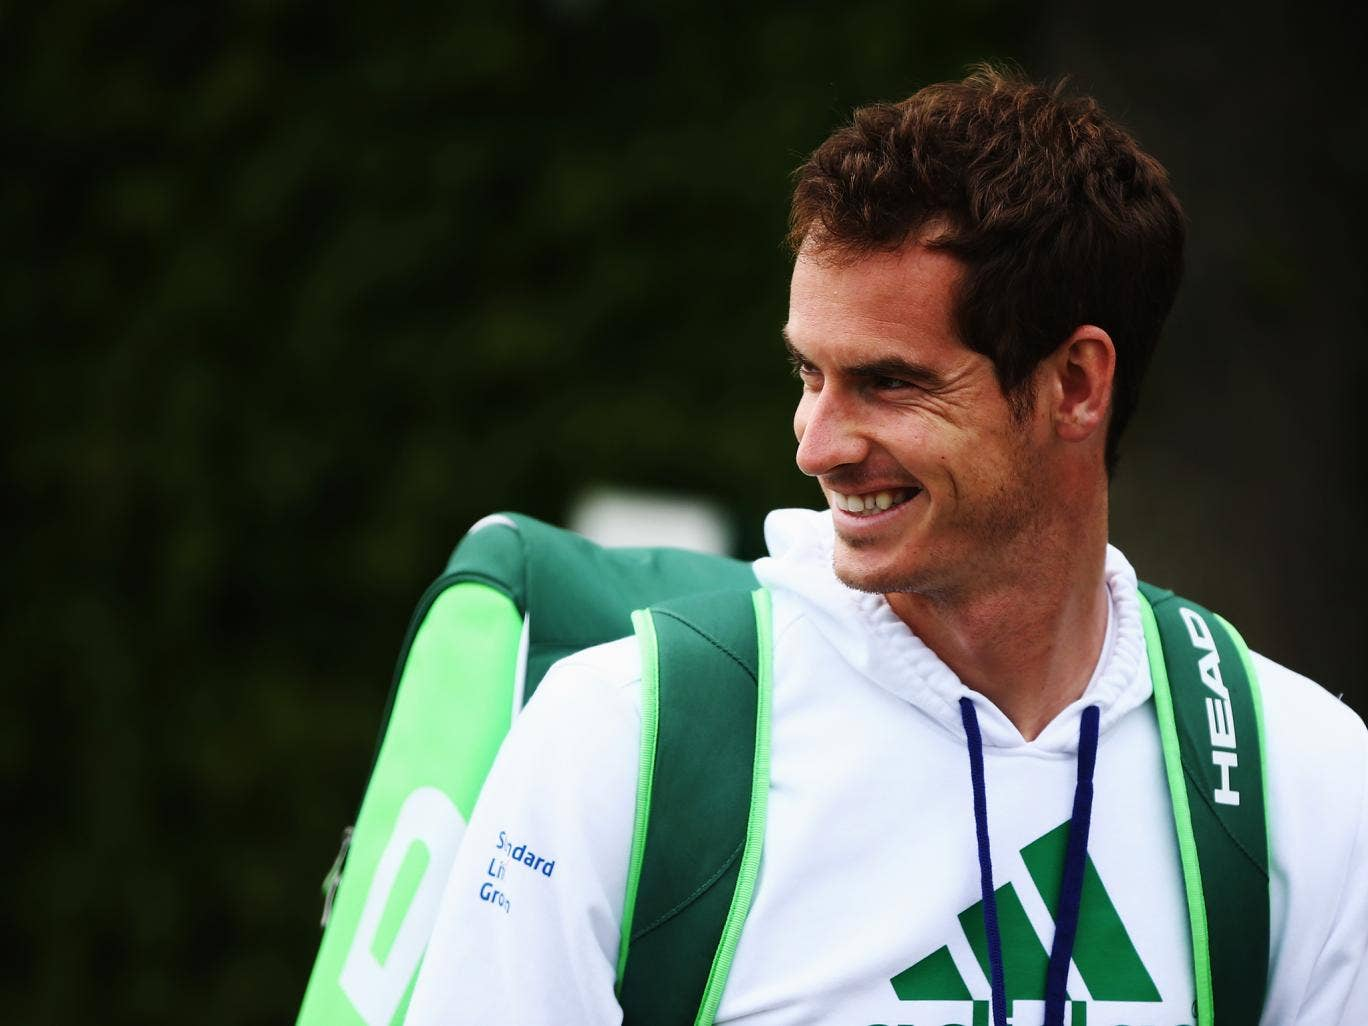 Andy Murray walks out to start a practice session on day four of the Wimbledon Lawn Tennis Championships